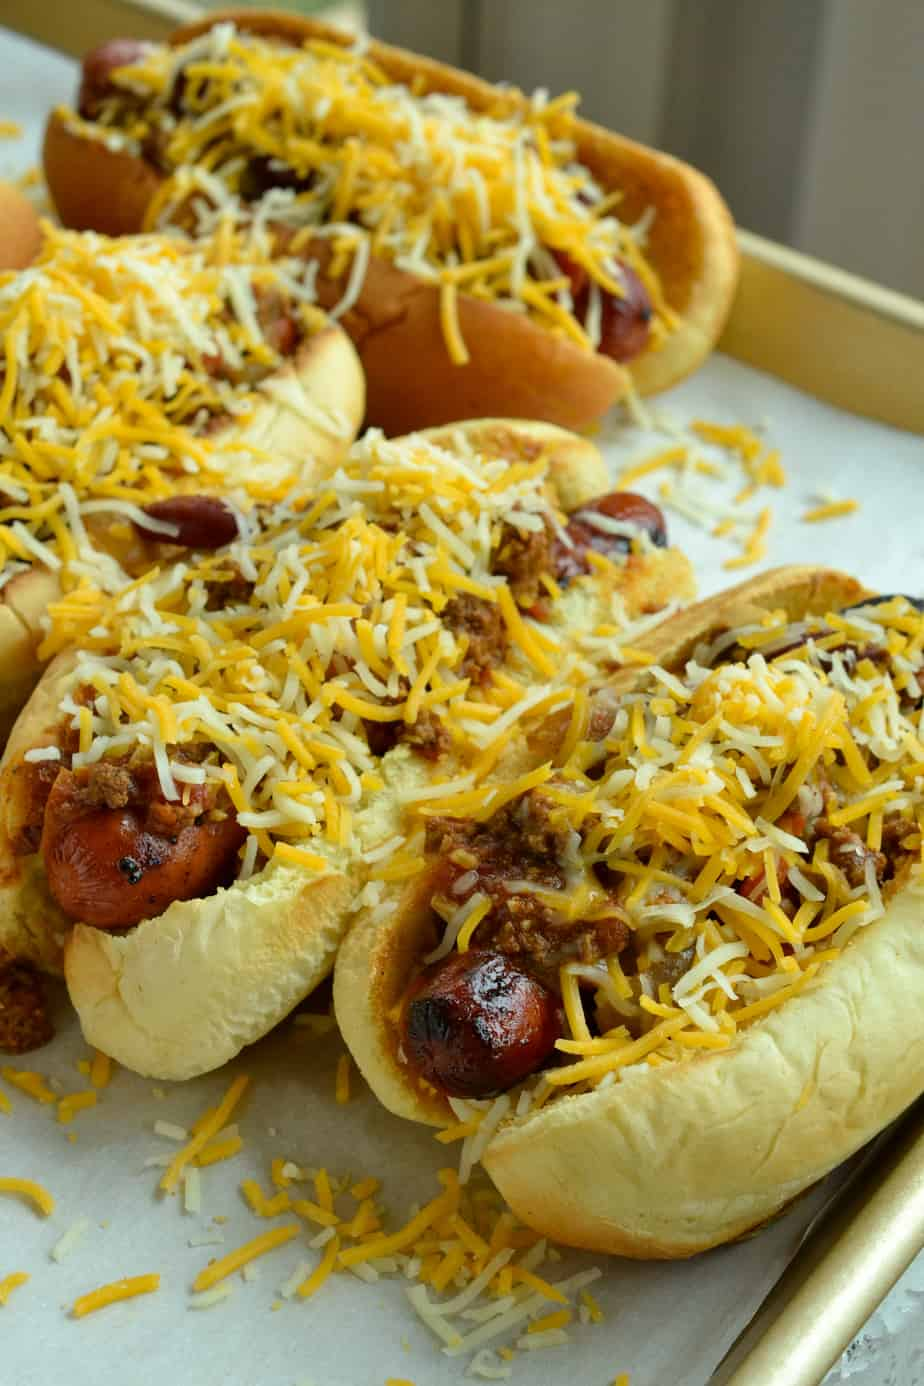 How to make Chili Cheese Dogs